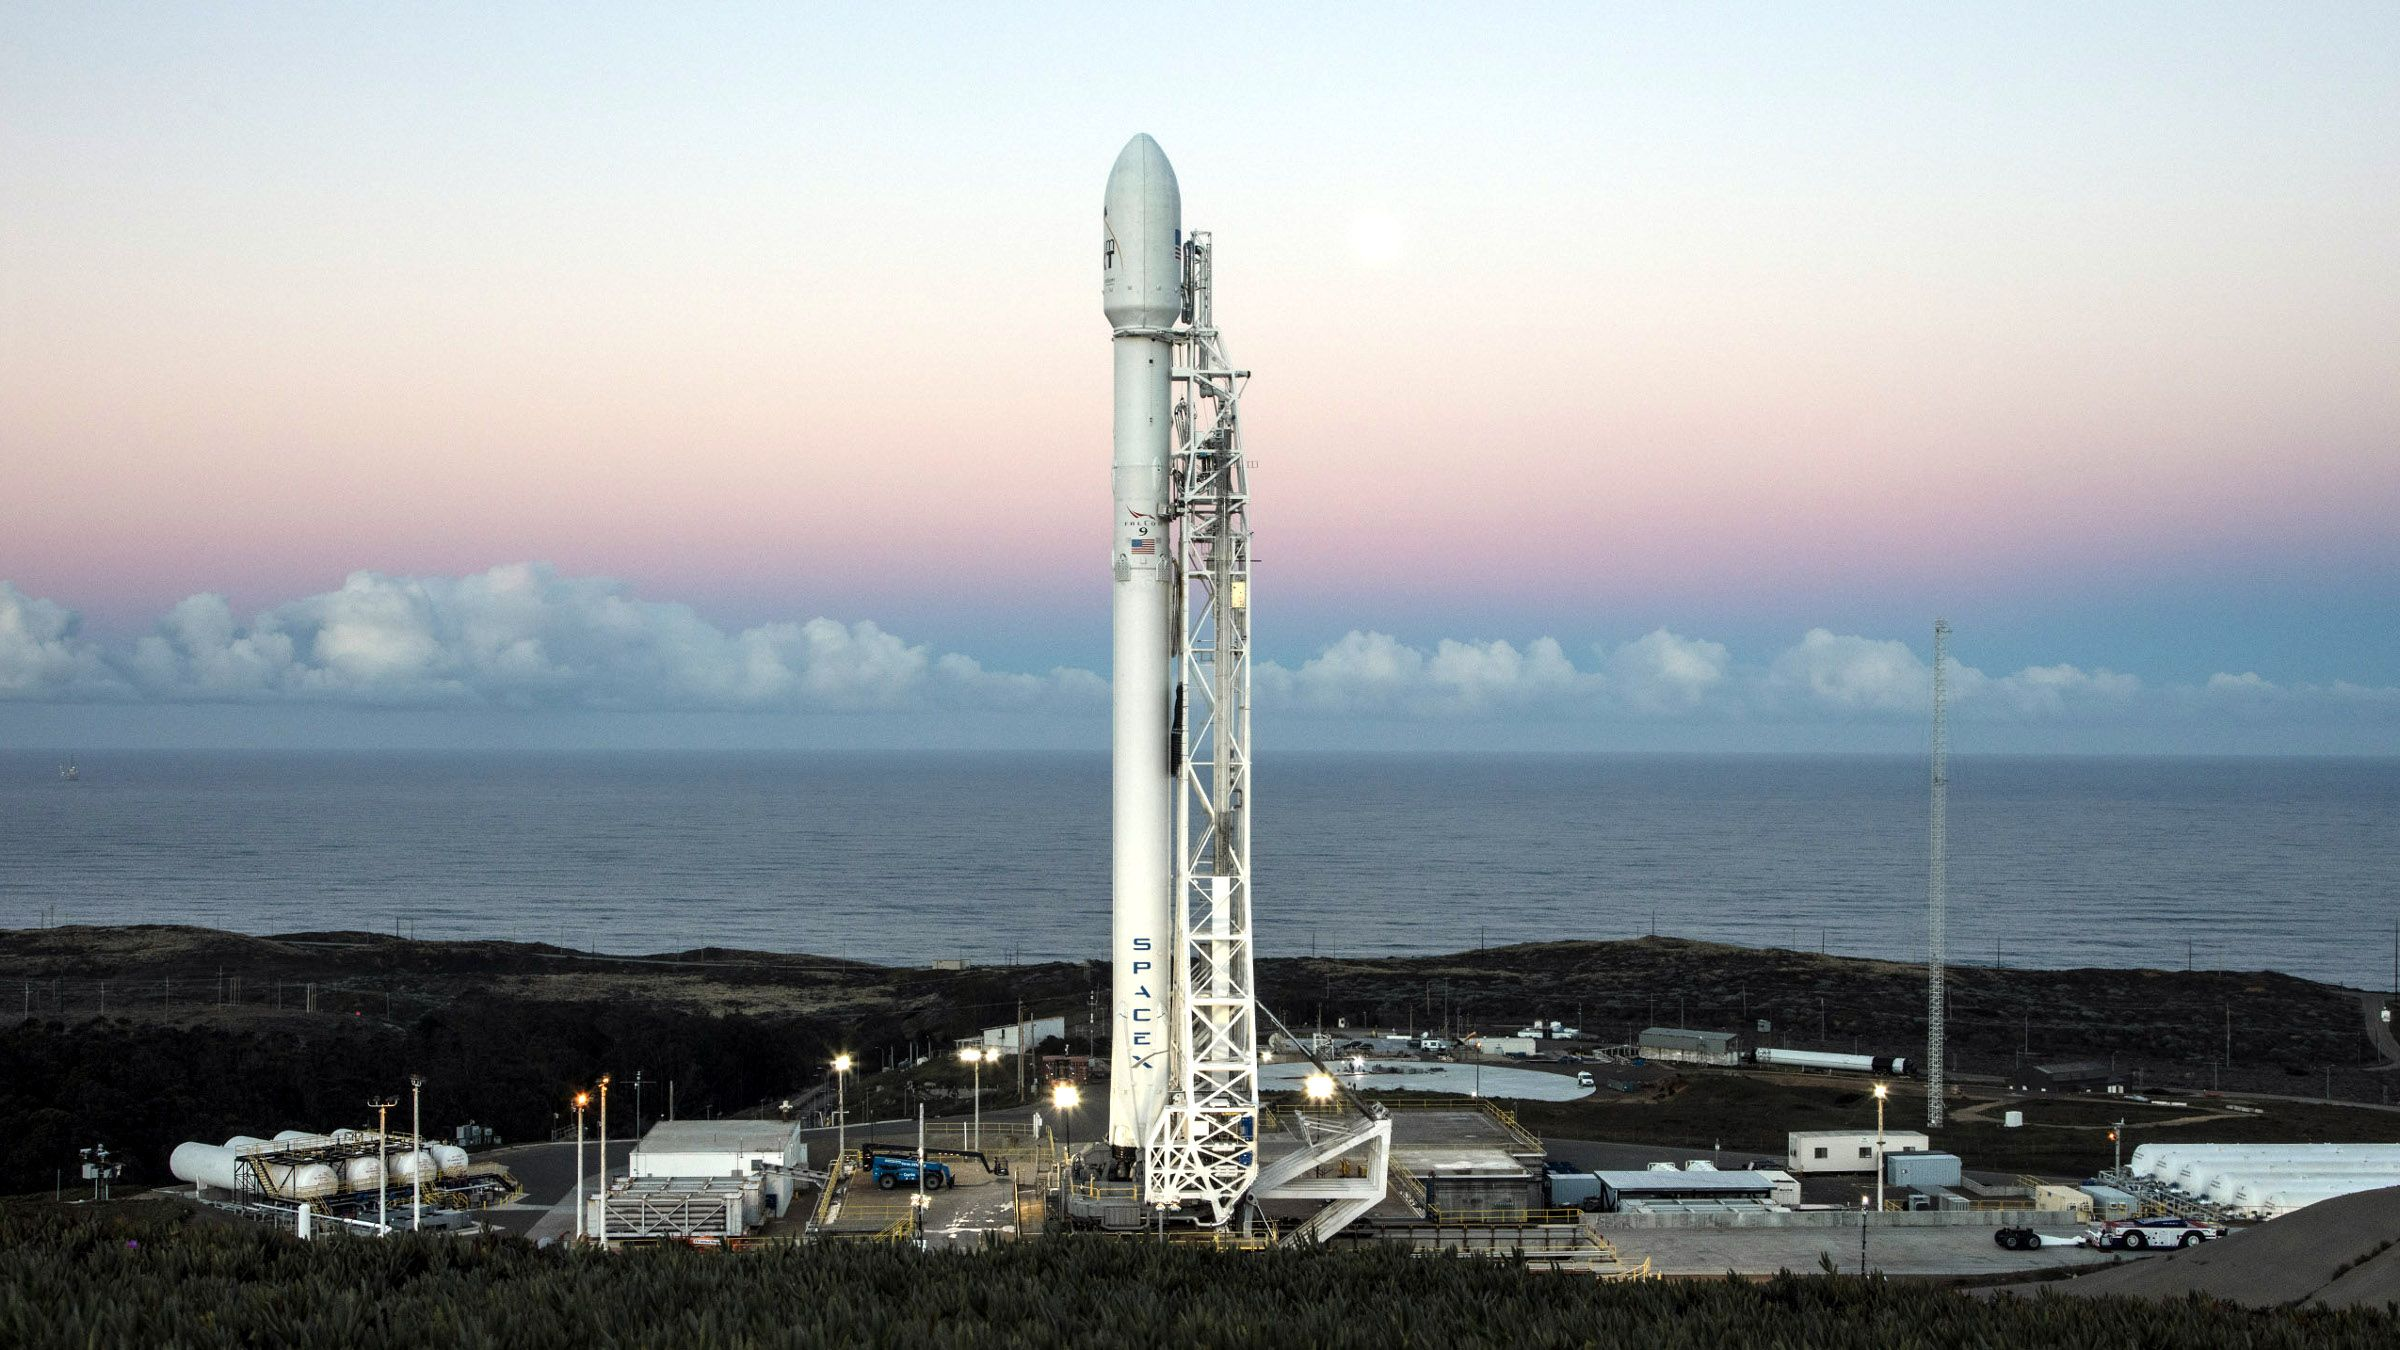 Falcon 9 with 10 Iridium NEXT communications satellites during Space Launch Complex 4E during Vandenberg Air Force Base, California.